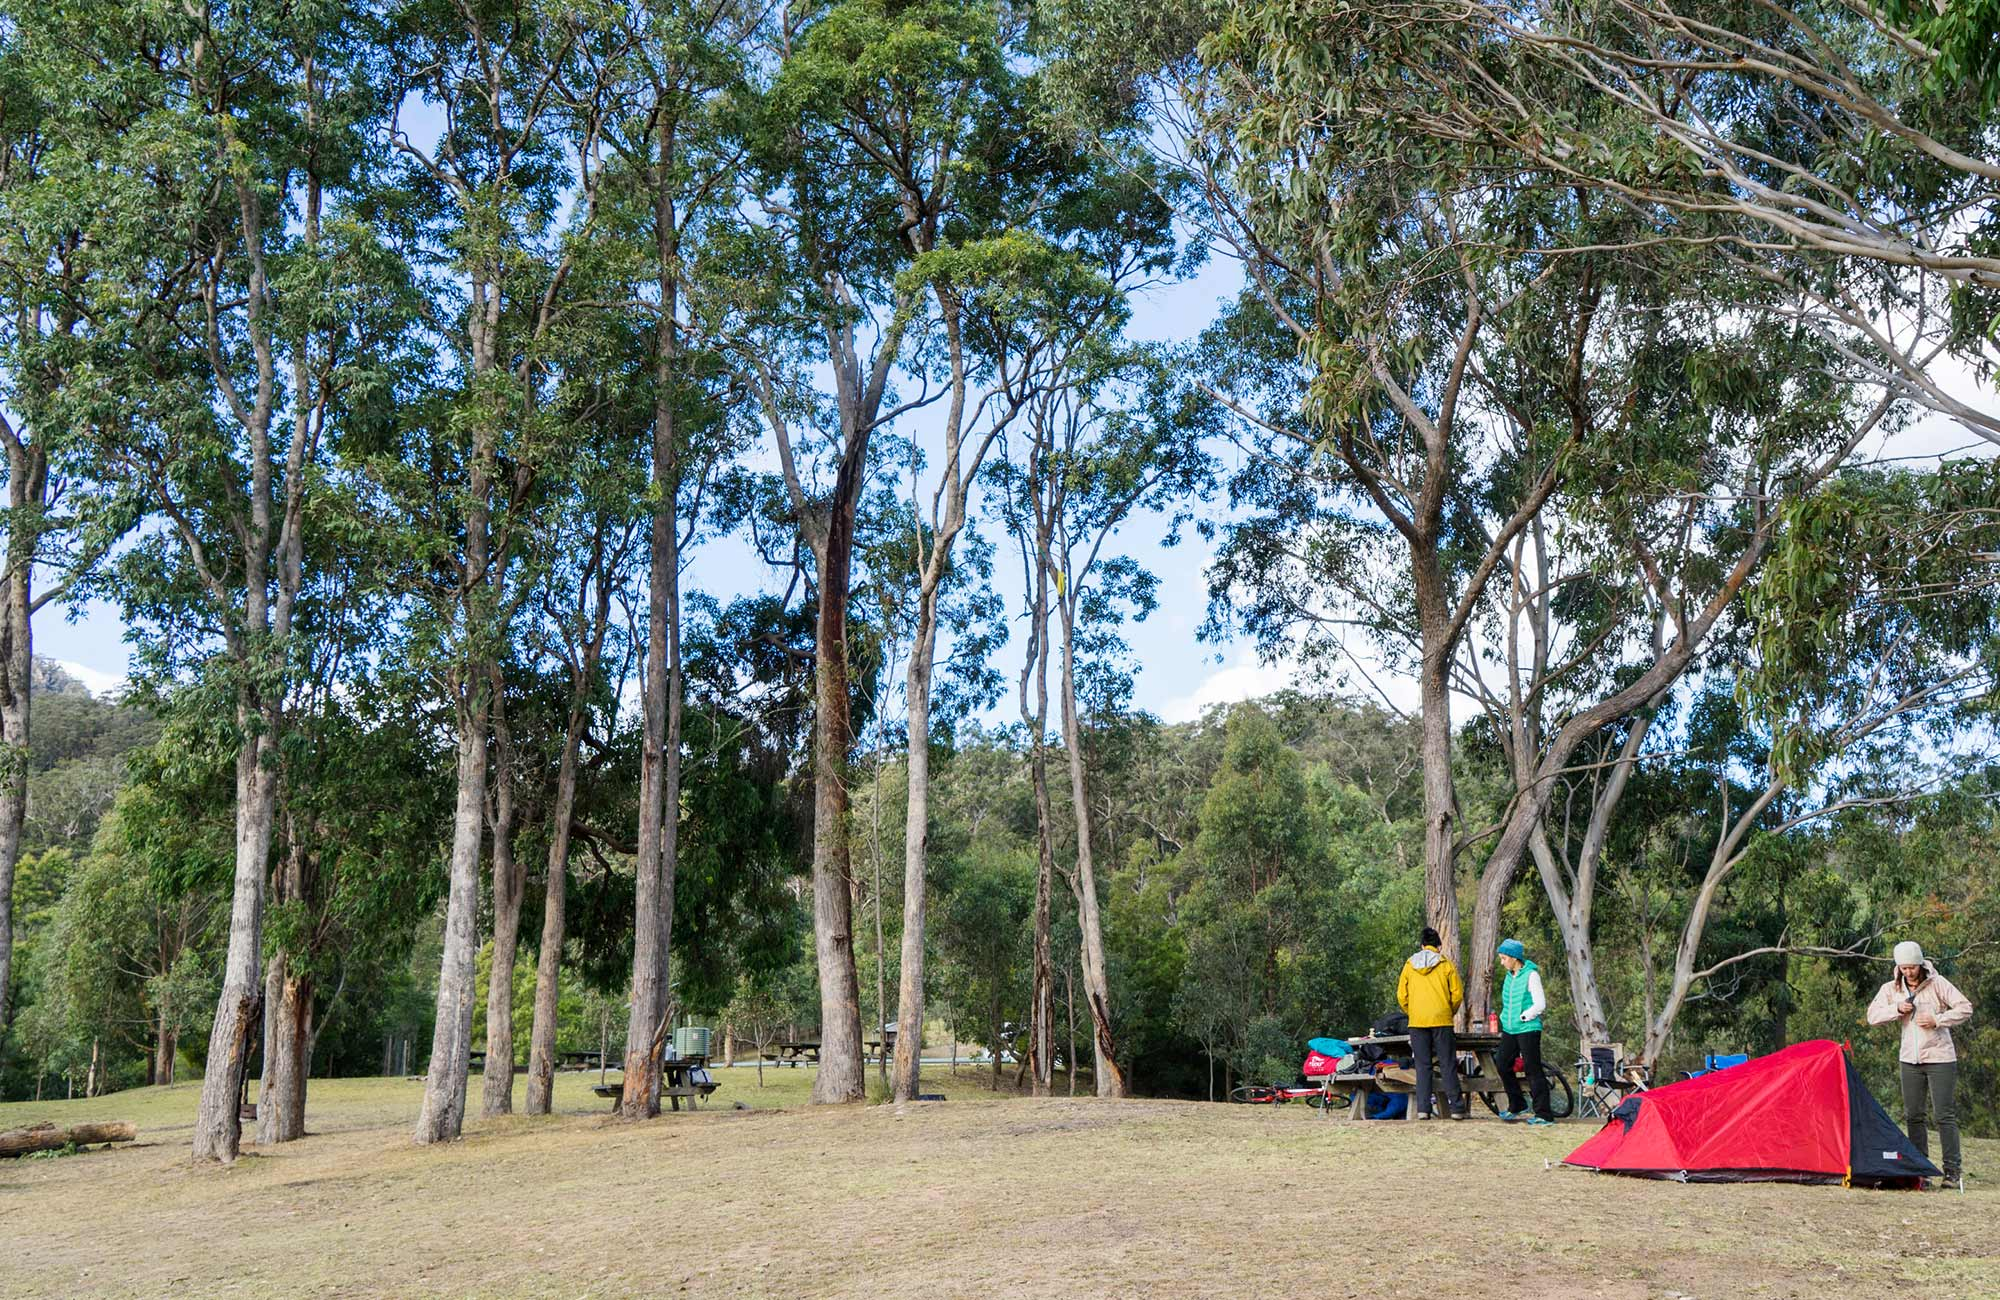 Tent and campers at Dunphys campground, Blue Mountains National Park. Photo: Simone Cottrell/OEH.